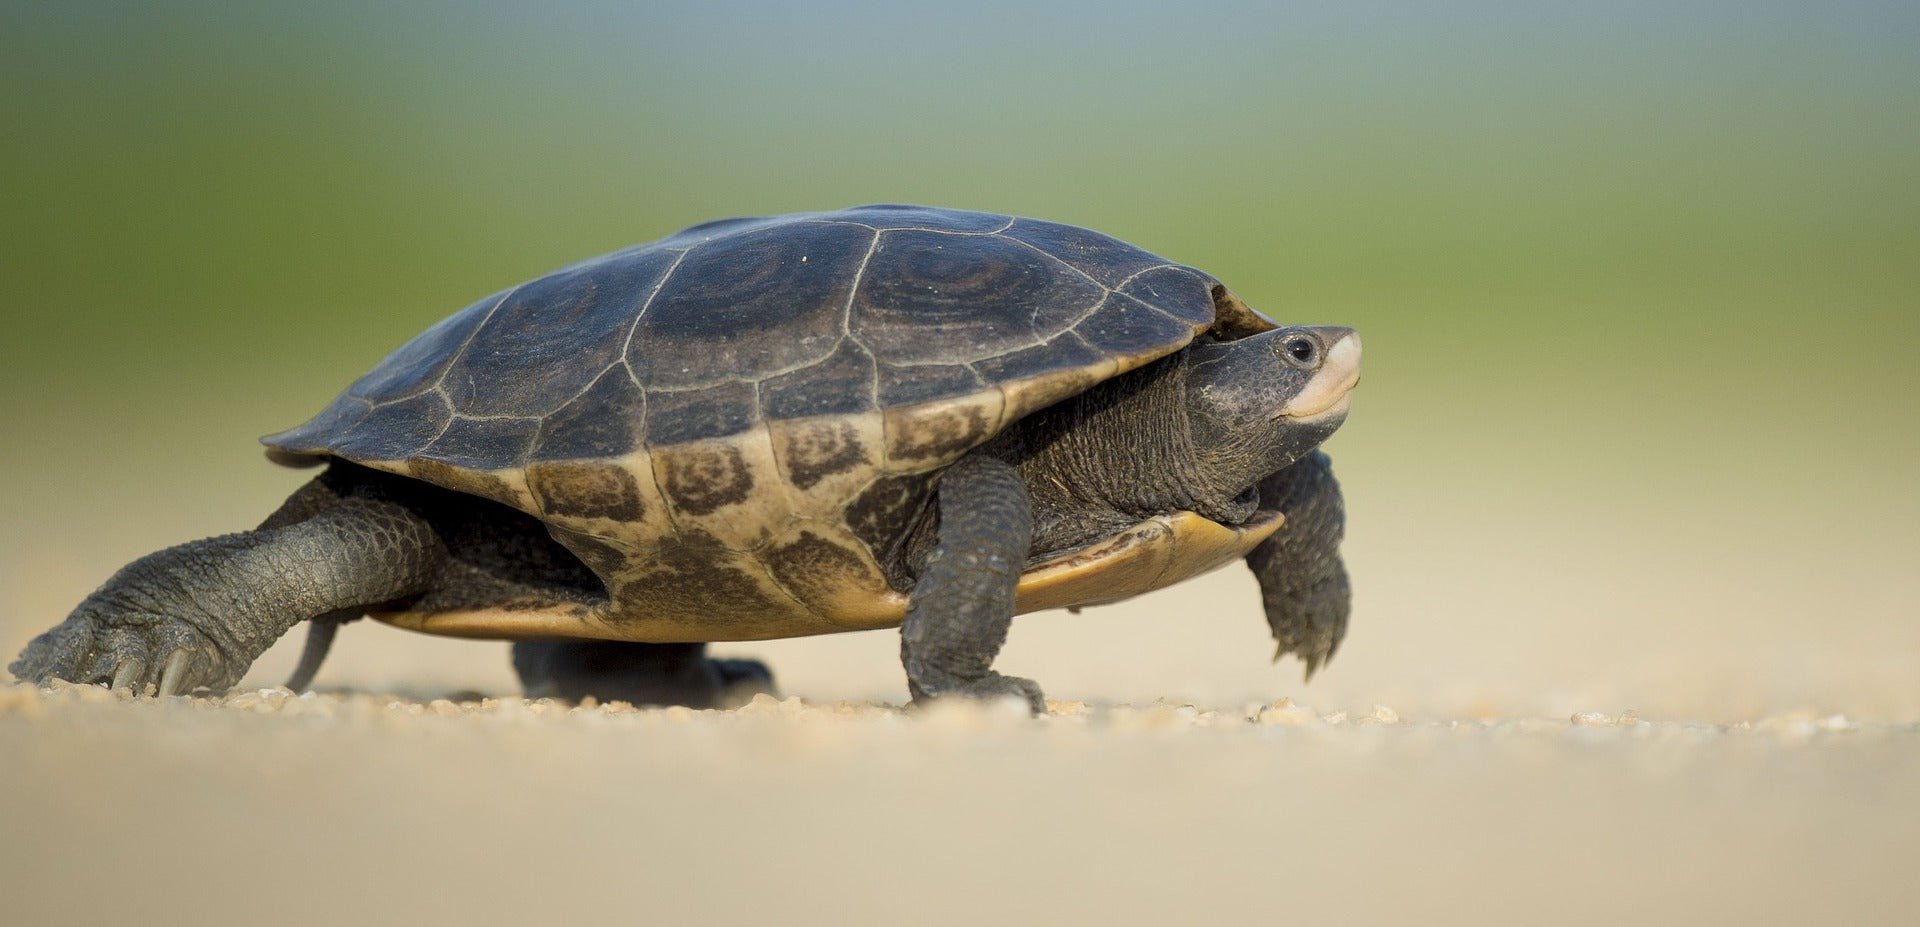 How Long Can Small Turtles Go Without Food And Water?